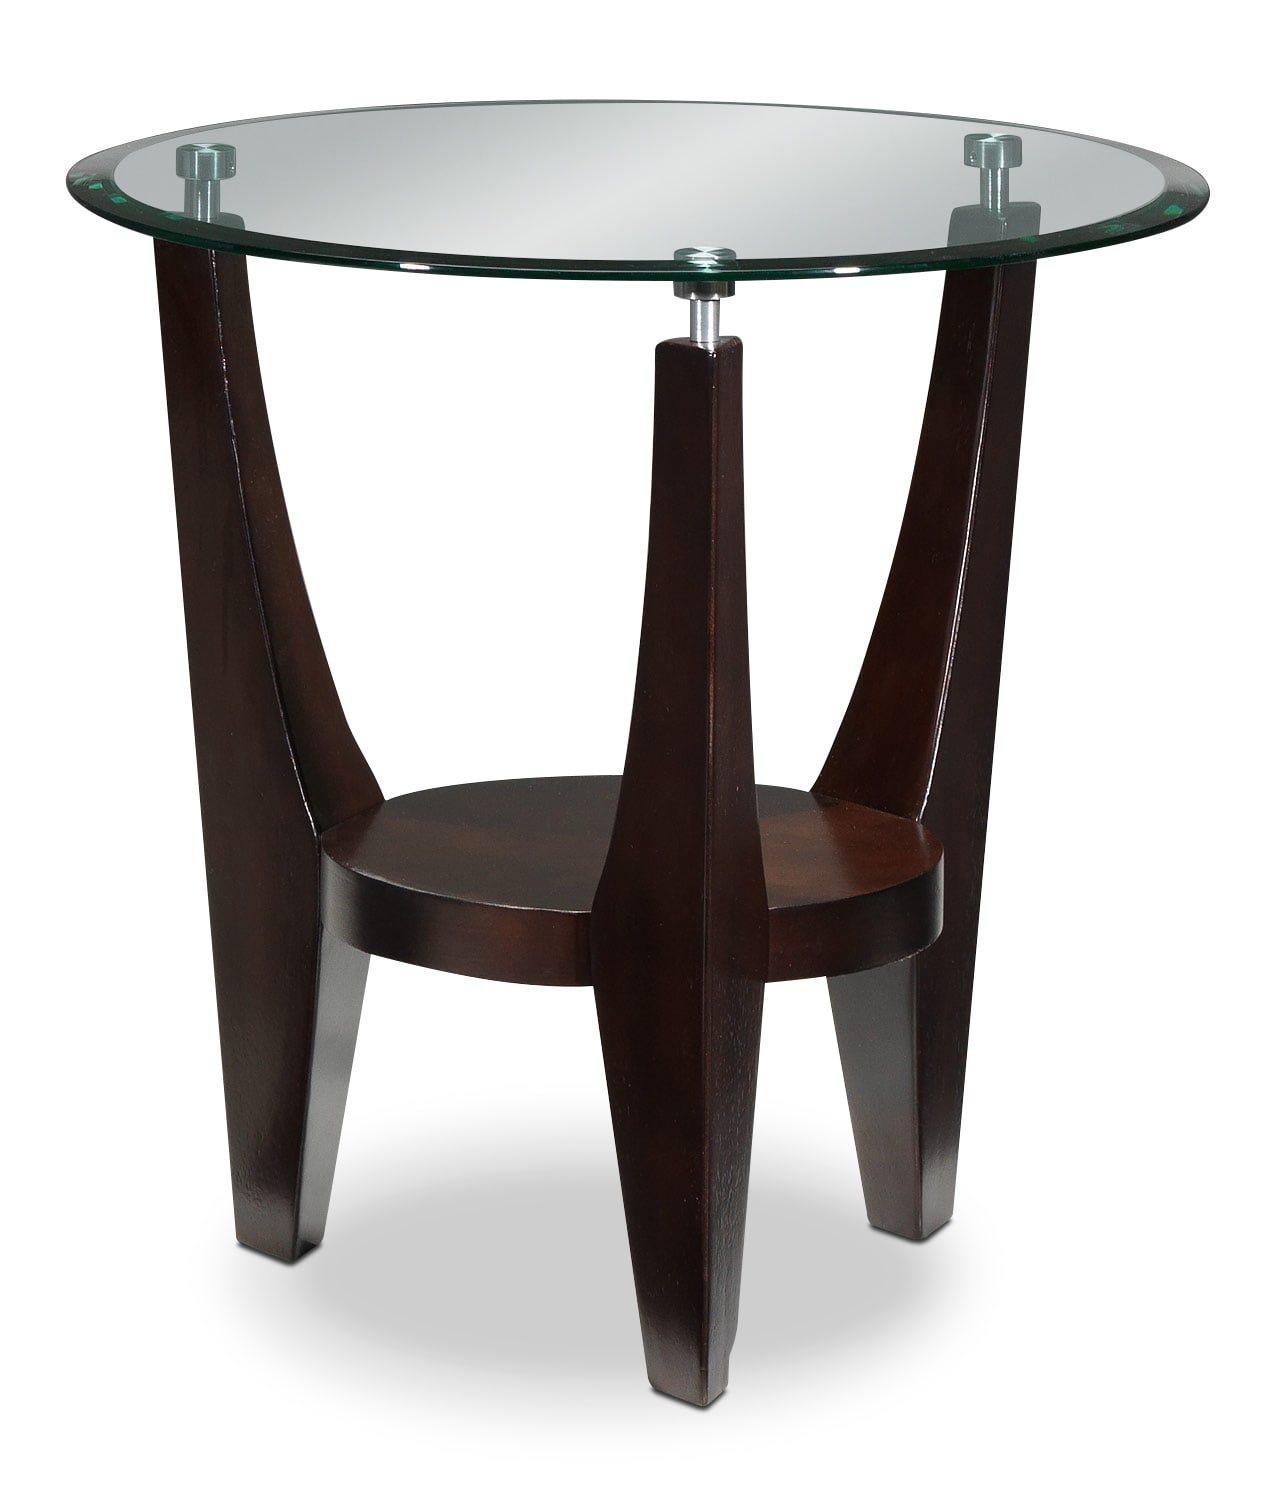 Cher End Table - Light Espresso